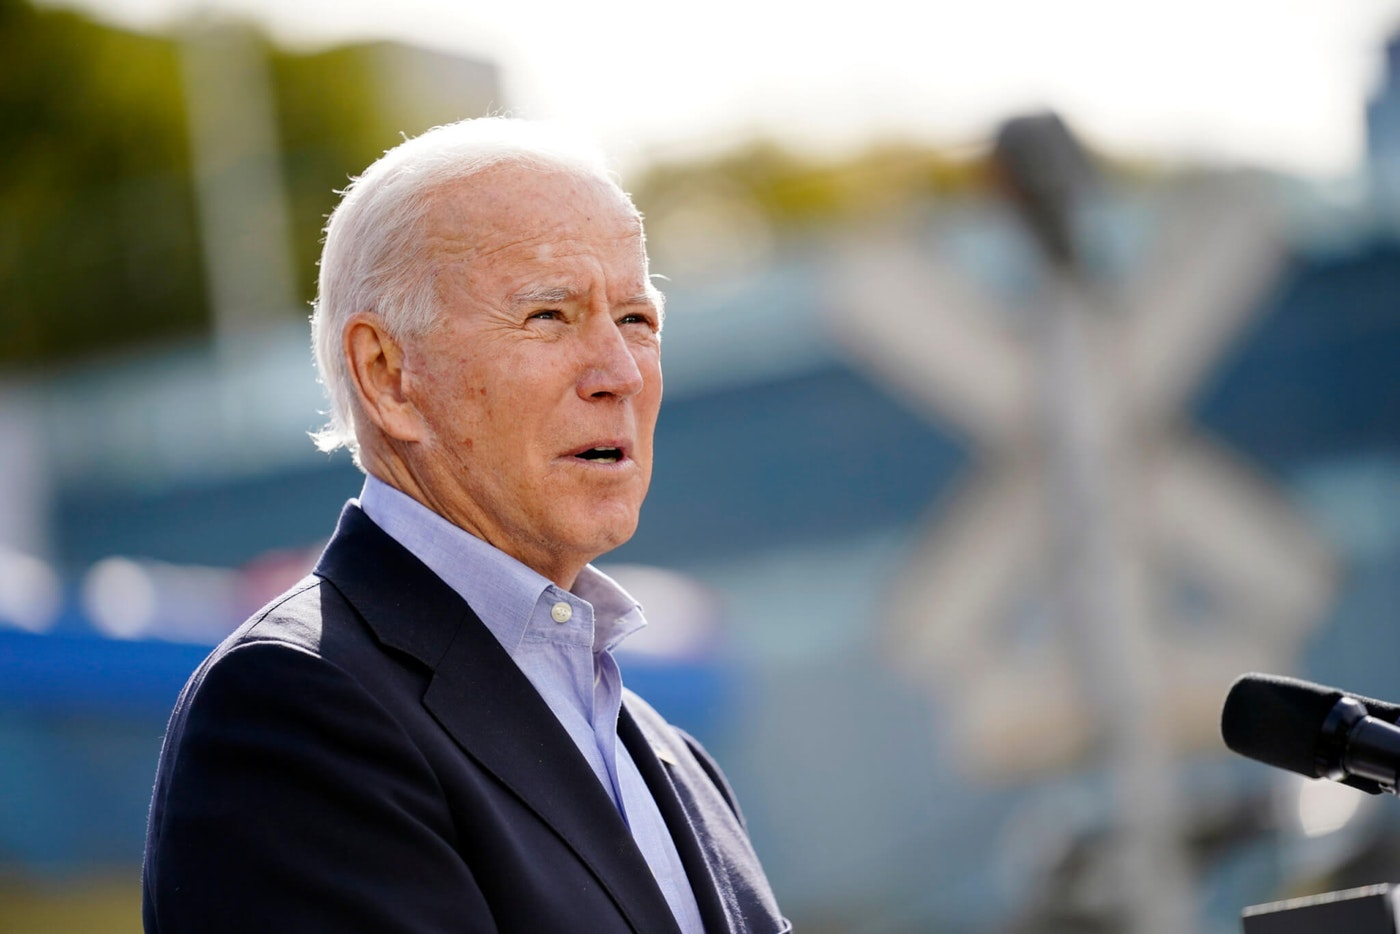 President-Elect Joe Biden speaks during a campaign stop at Amtrak's Cleveland Lakefront train station, Sept. 30, 2020, in Cleveland. (AP Photo/Andrew Harnik)